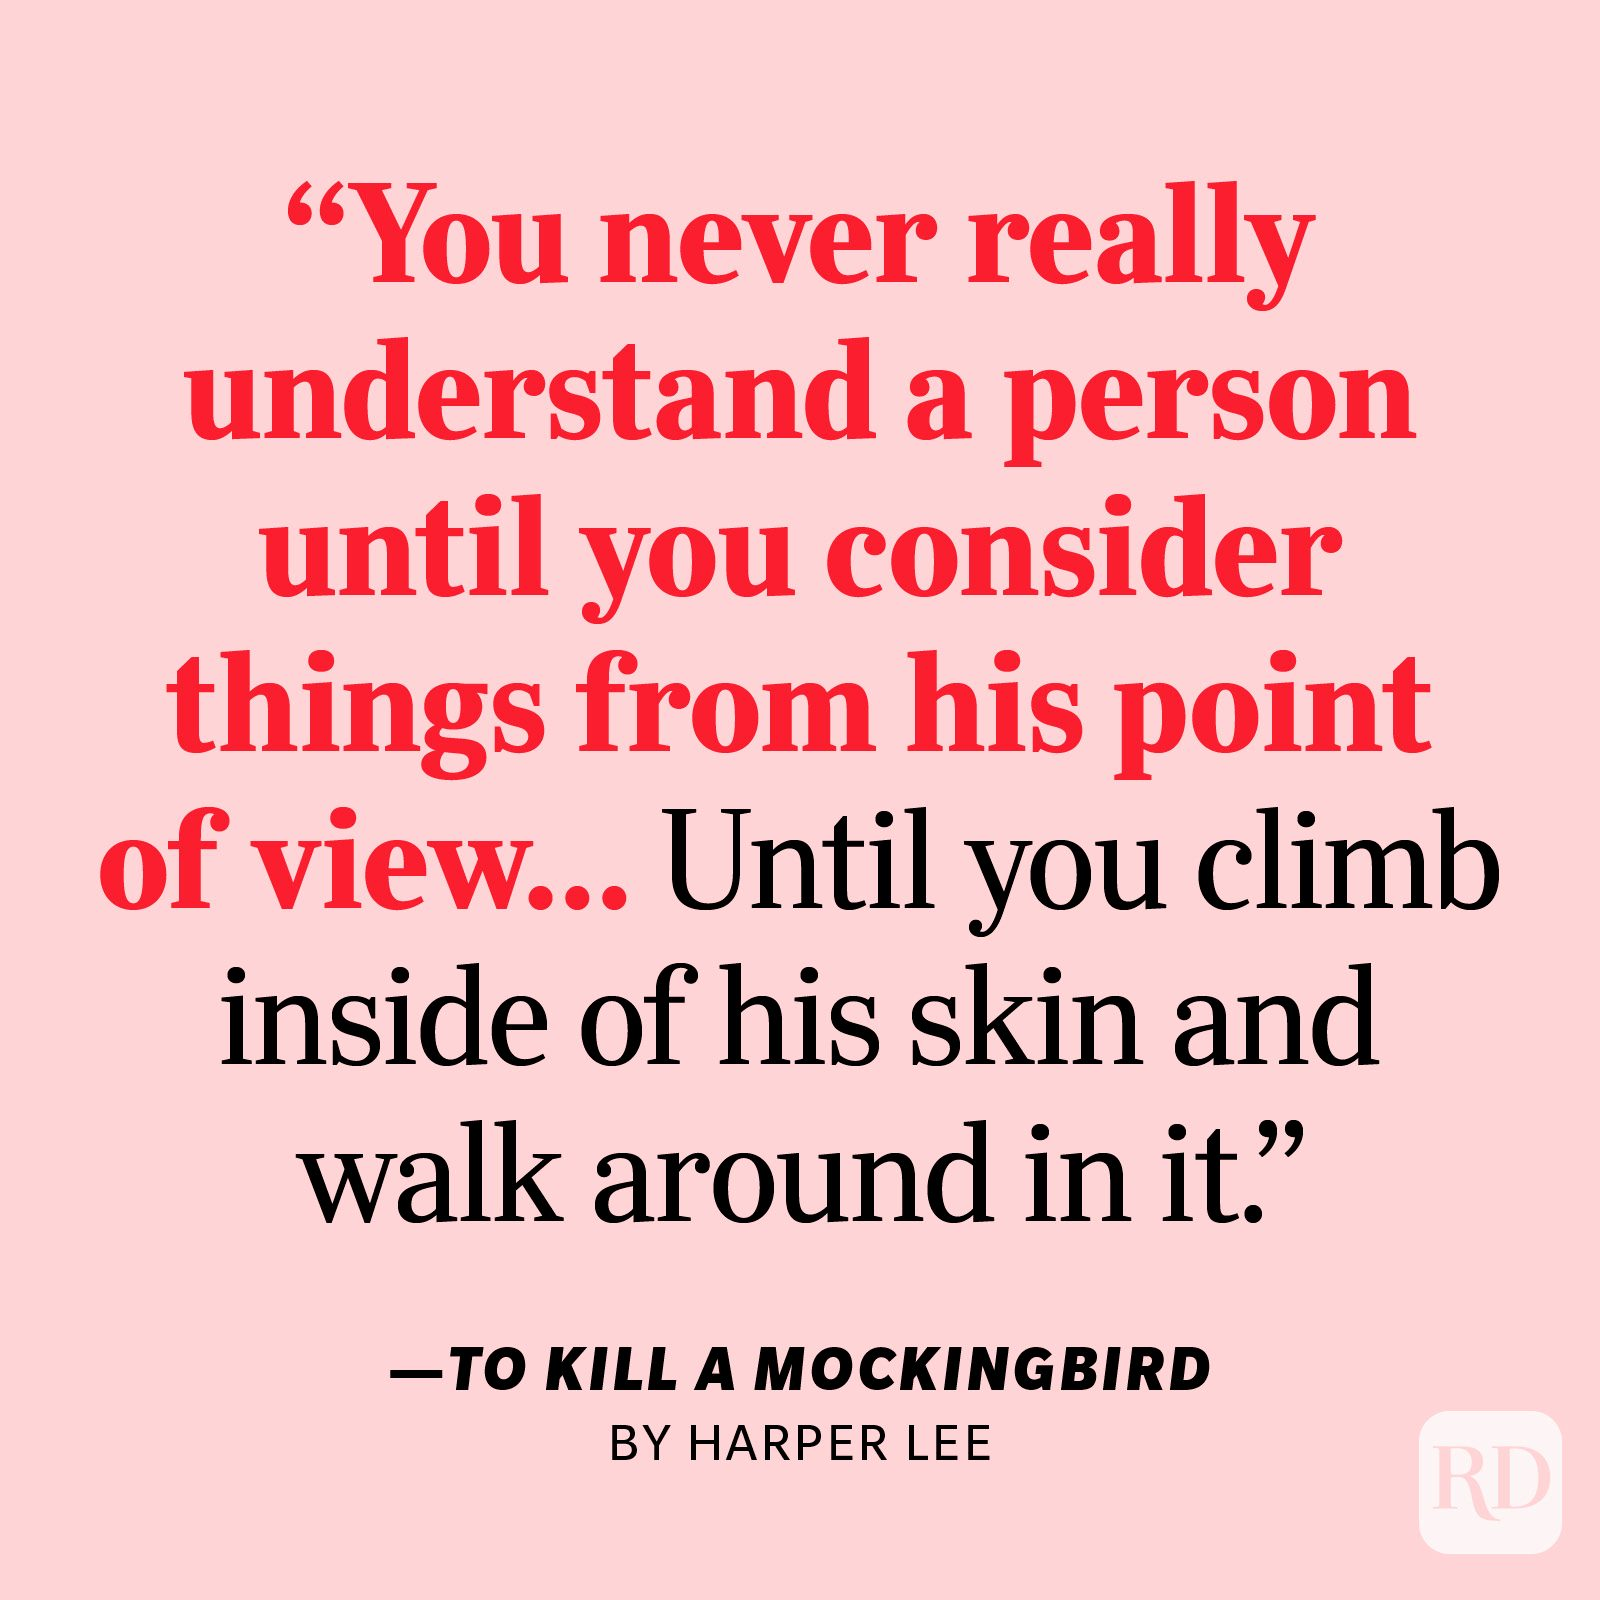 """To Kill a Mockingbird by Harper Lee     """"You never really understand a person until you consider things from his point of view…Until you climb inside of his skin and walk around in it."""""""